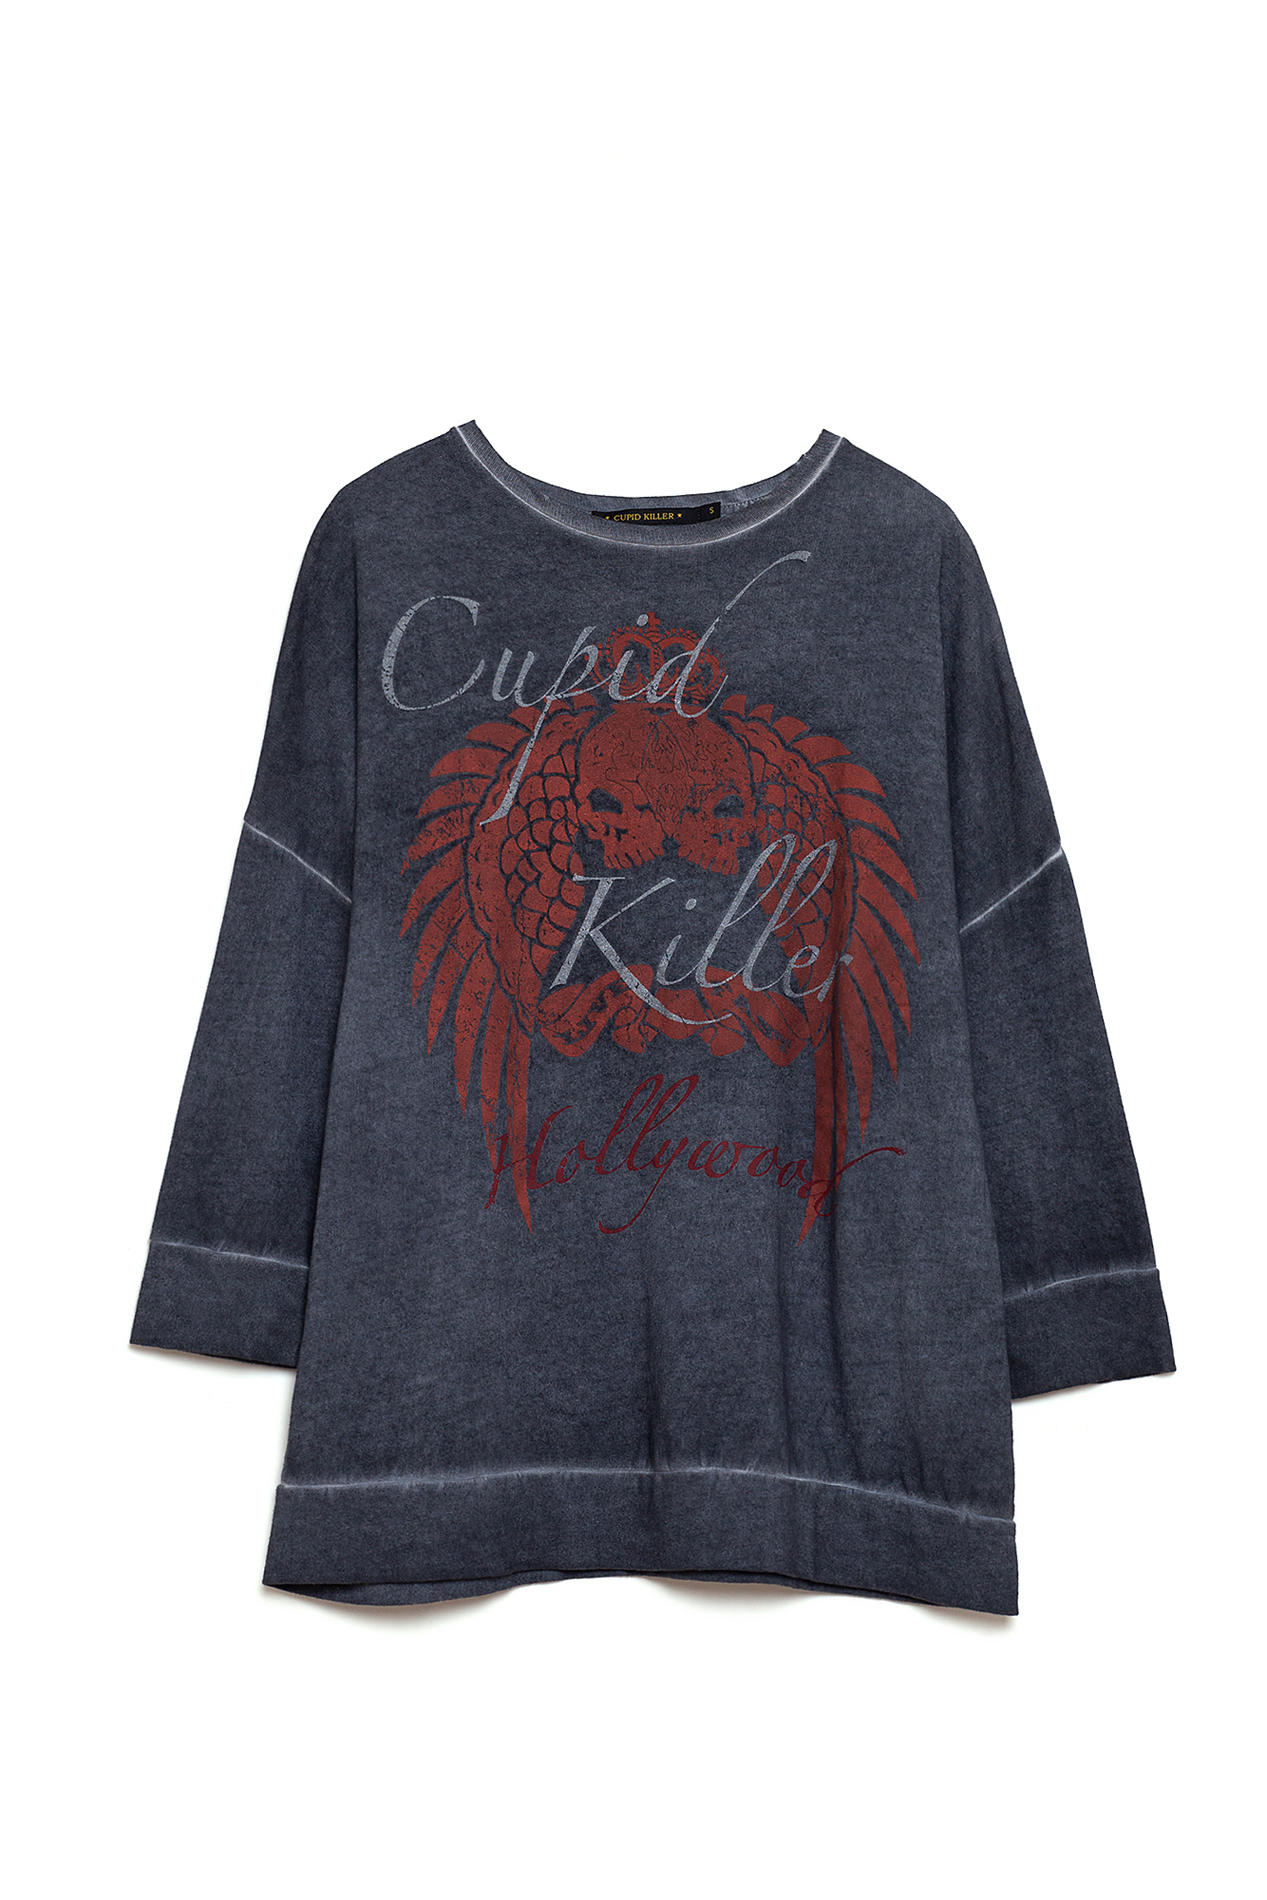 CUPIDO KILLER COLLECTION HOLLYWOOD T shirt met Mouwen Kleur Lange Grafit voor Vrouwen CK000083